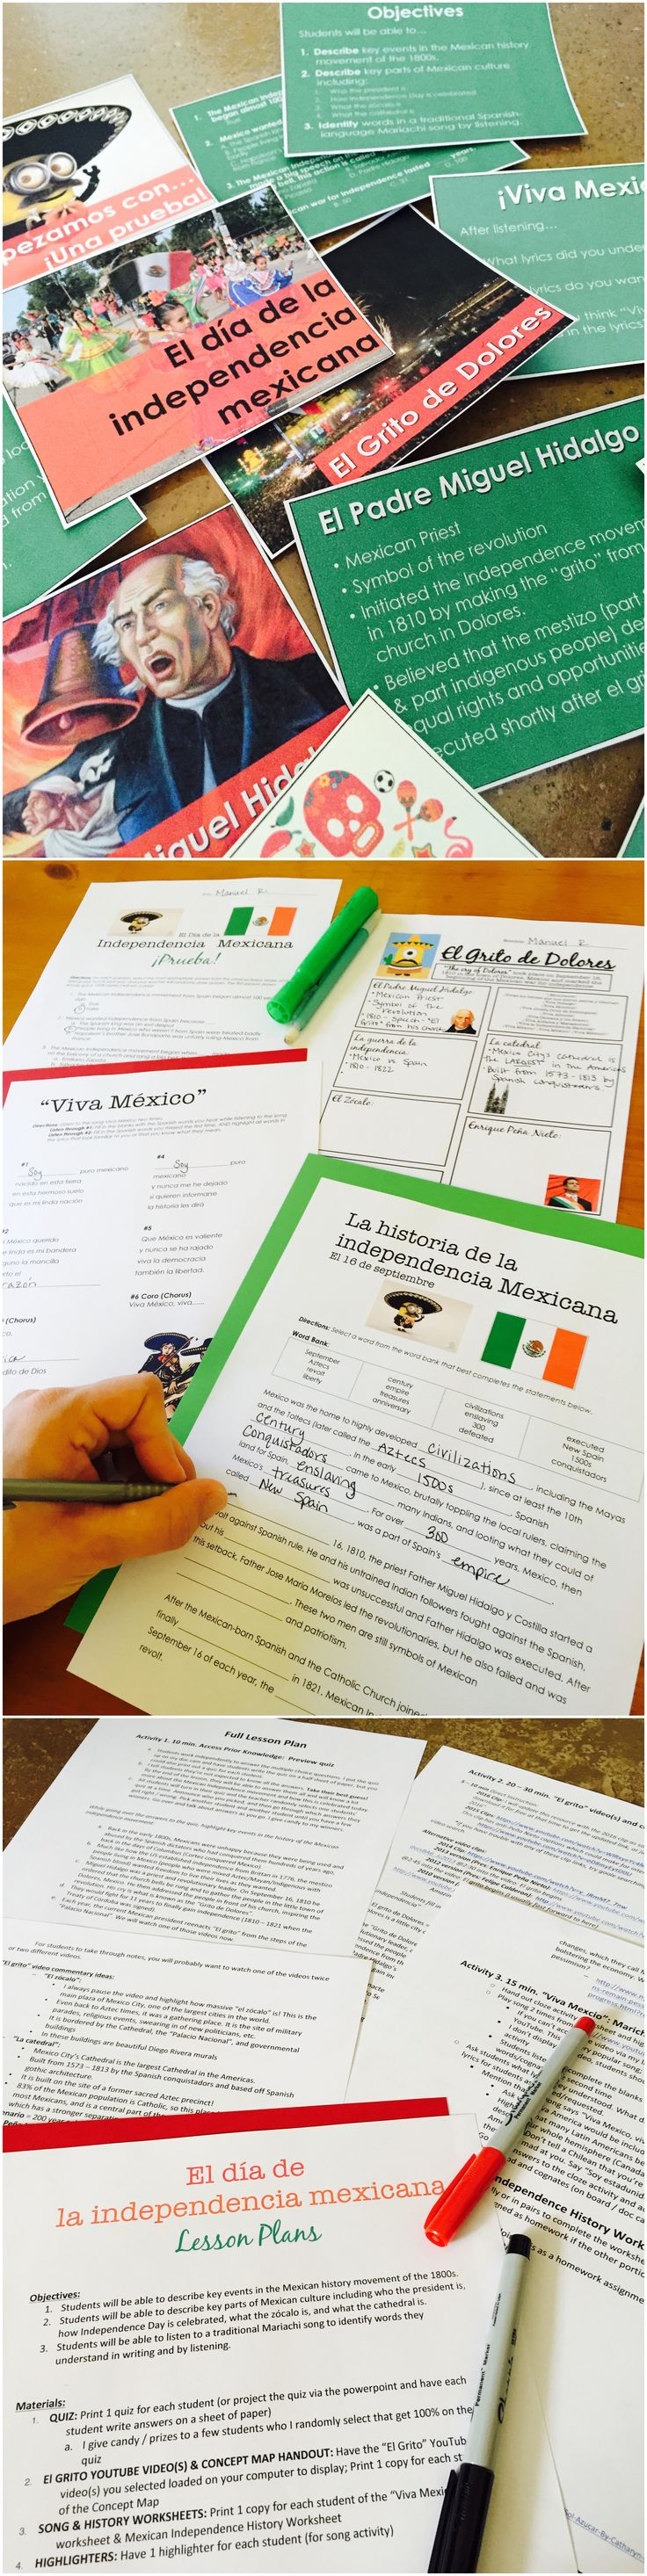 Mexican Independence Day One Hour Lesson for Beginning Spanish - Use authentic video and music to teach the holiday - By Sol Azúcar